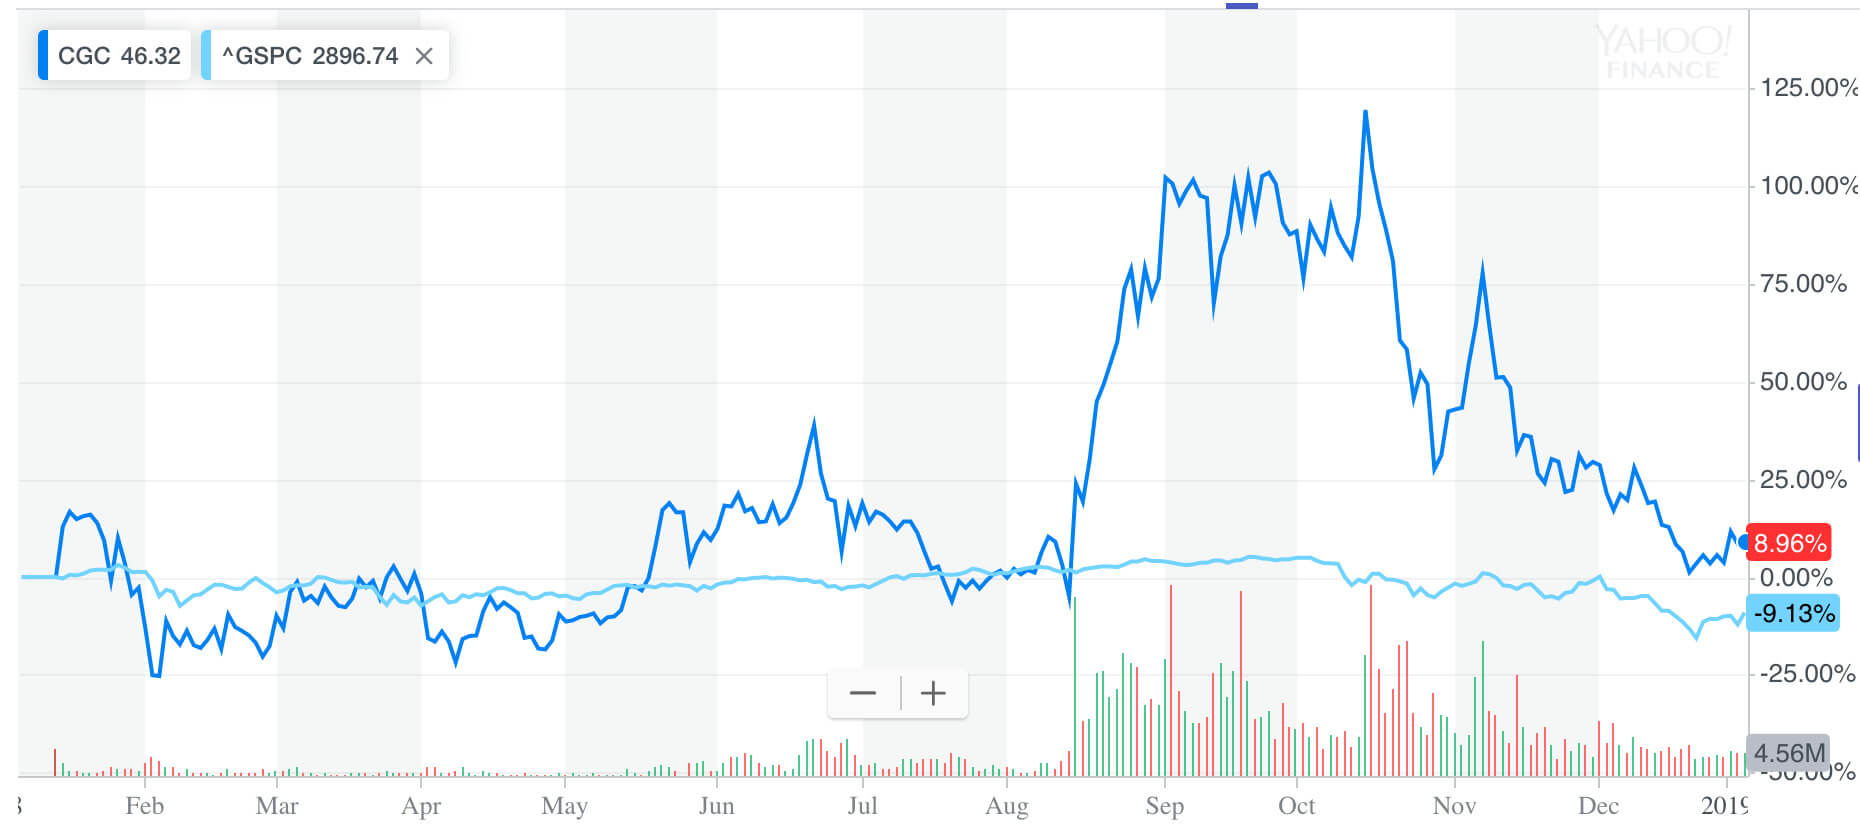 Our Canopy Growth Stock Prediction In 2019 Buy Or Sell